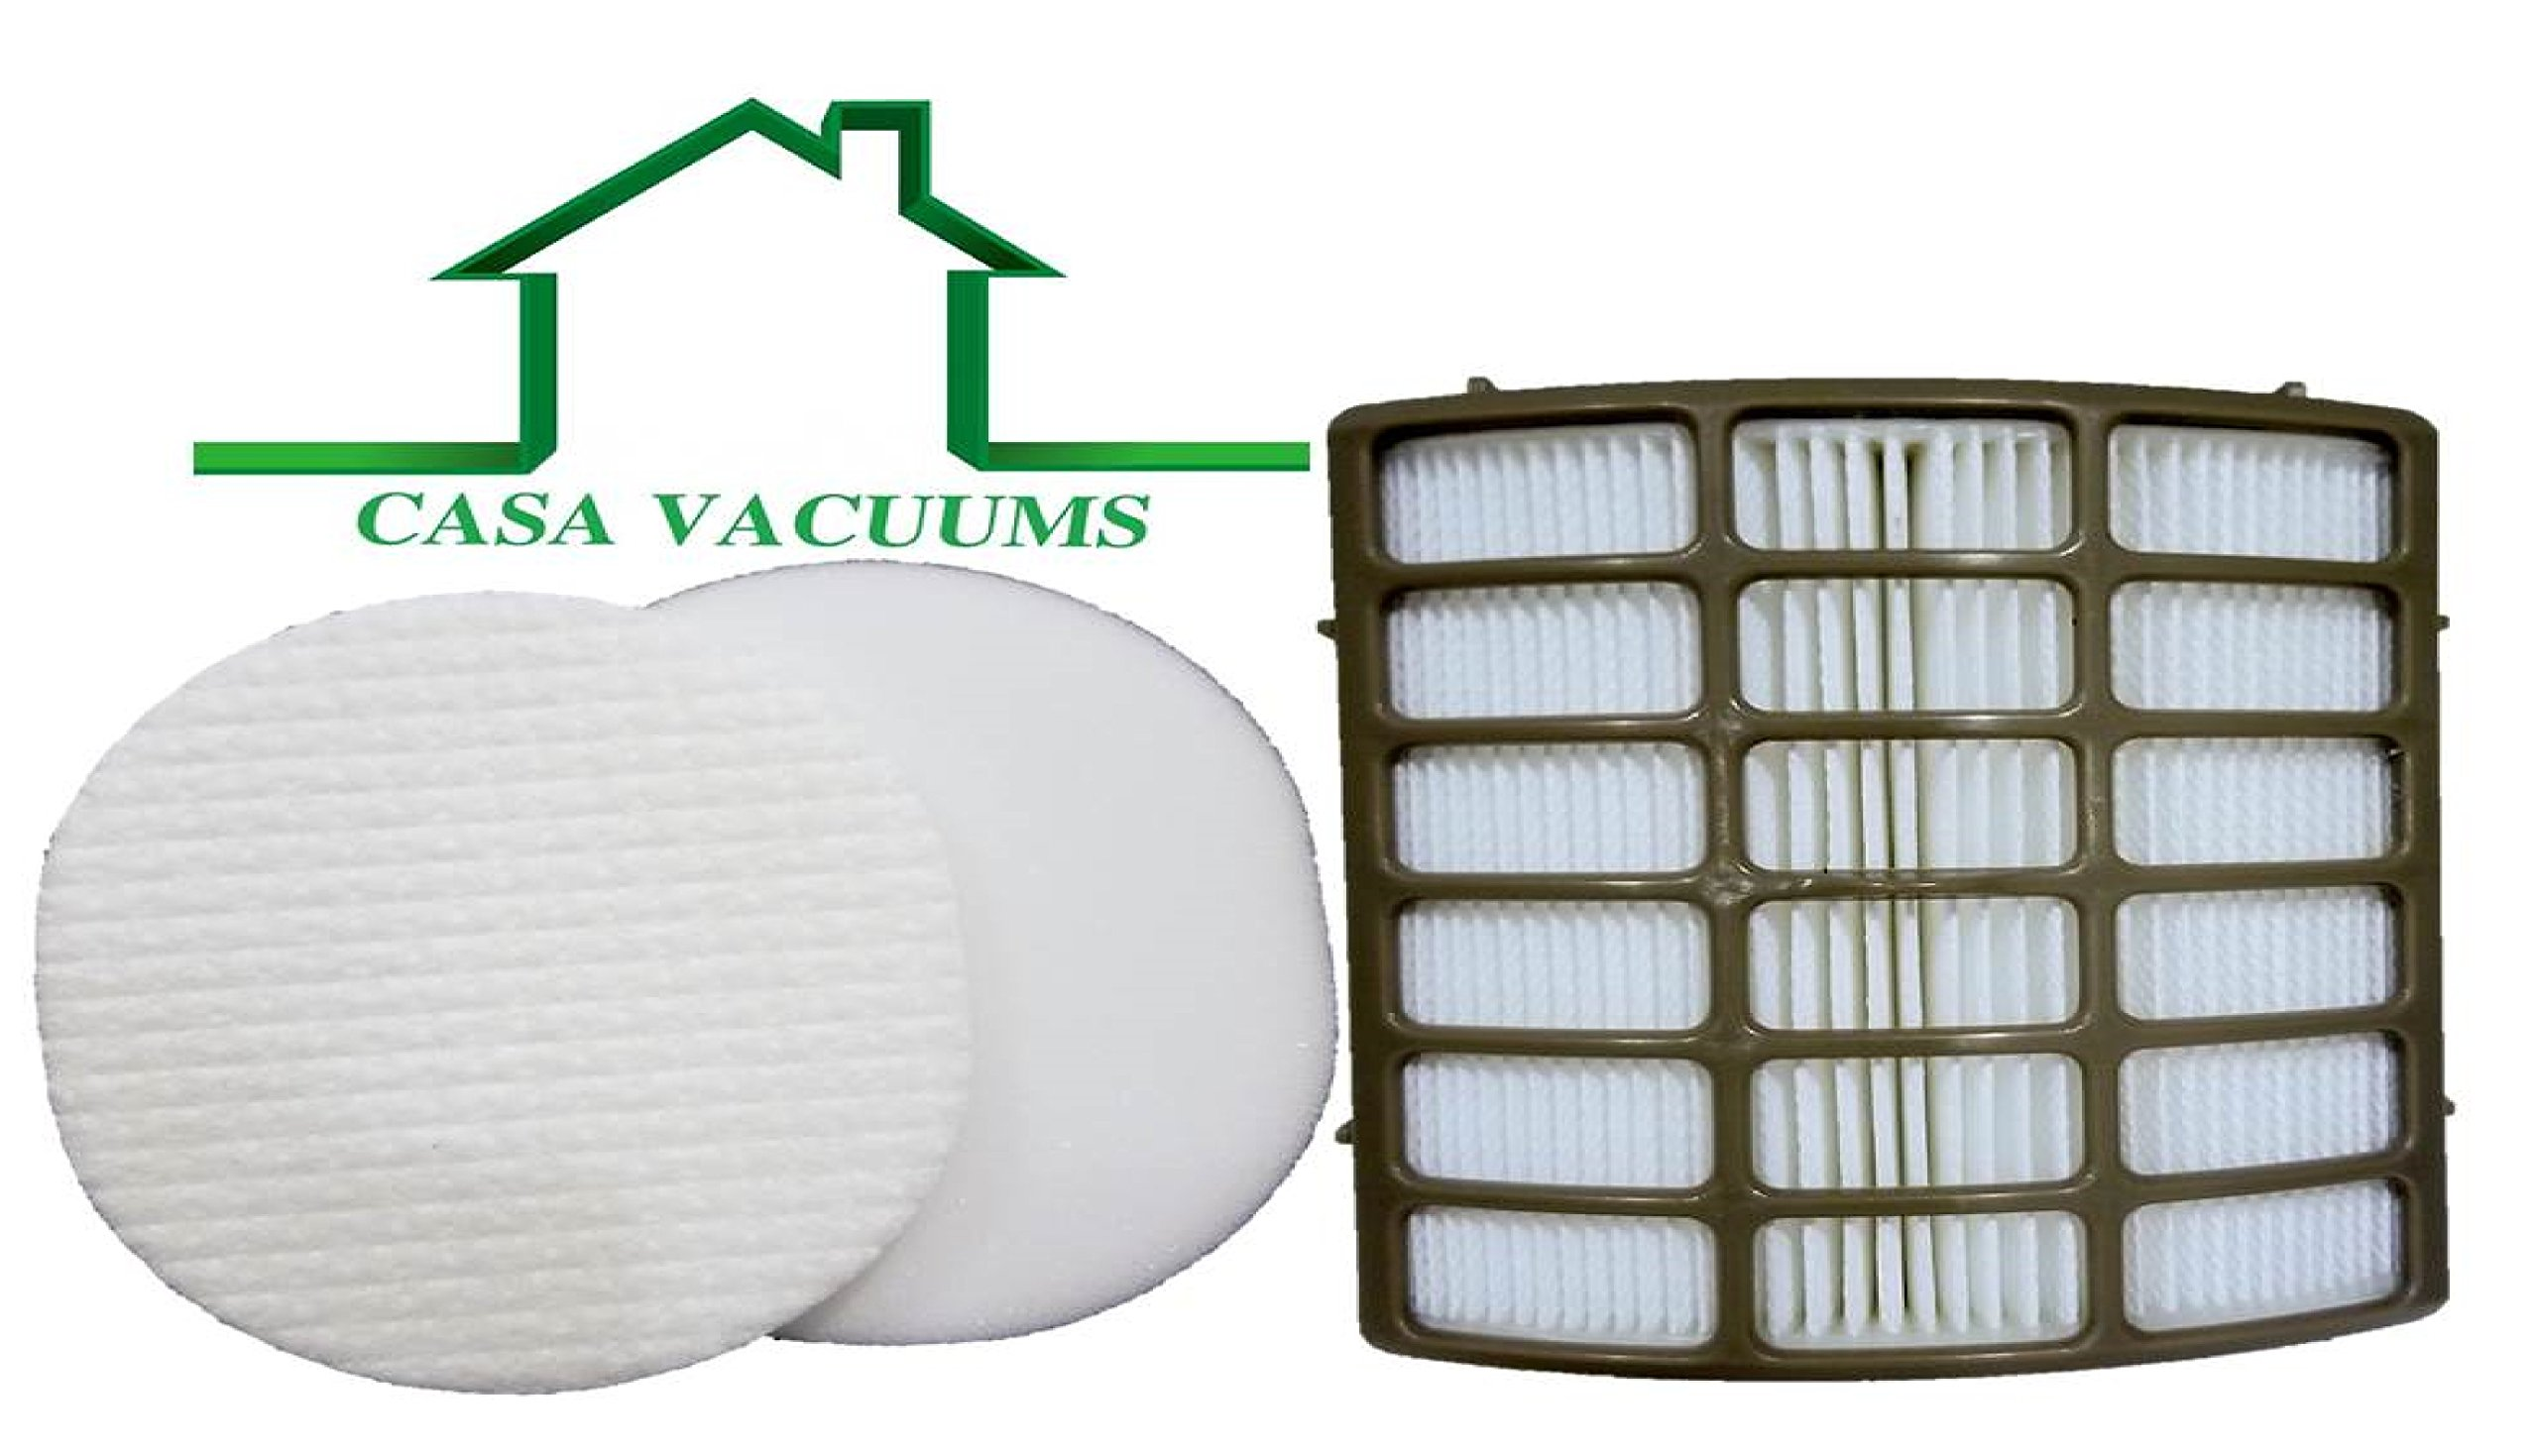 Shark Navigator Professional Upright Vacuum Filter Kit fits NV80, NV60, NV70, NVC80C, UV420, NV90, NV95 part # XFF80 & XHF80, by Casa Vacuums